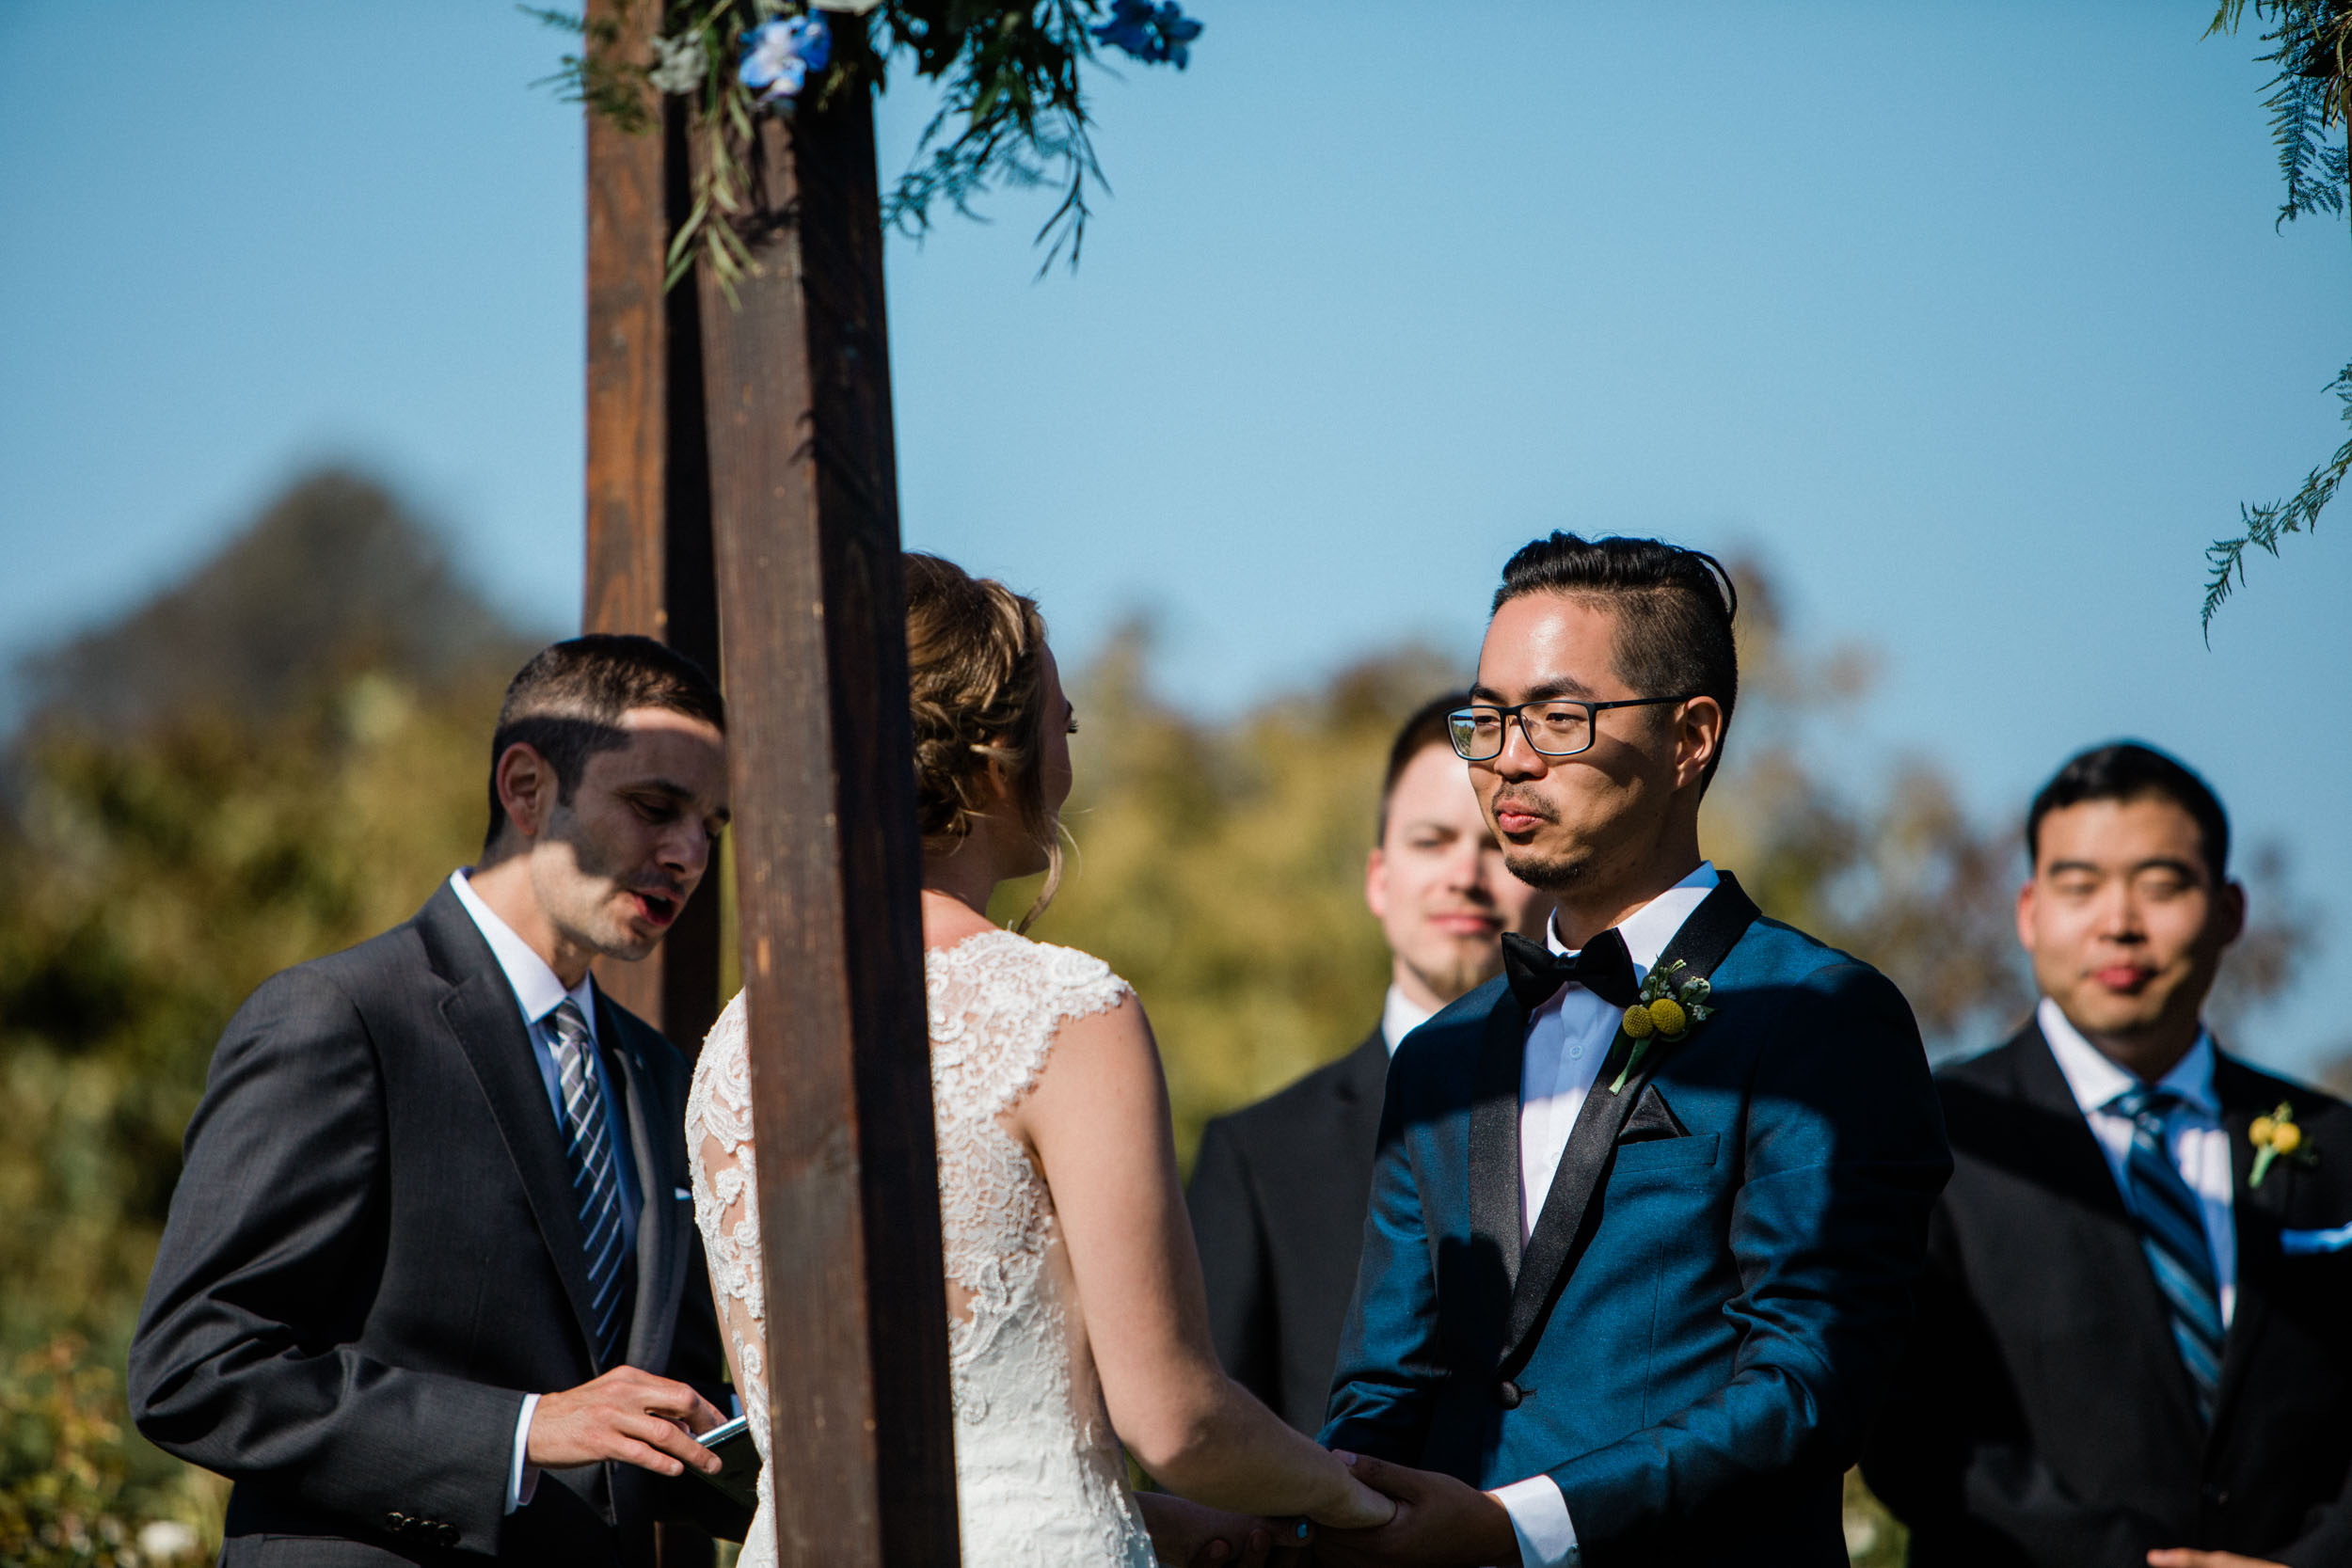 BKM-Photography-Gerry-Ranch-Southern-California-Wedding-0077.jpg